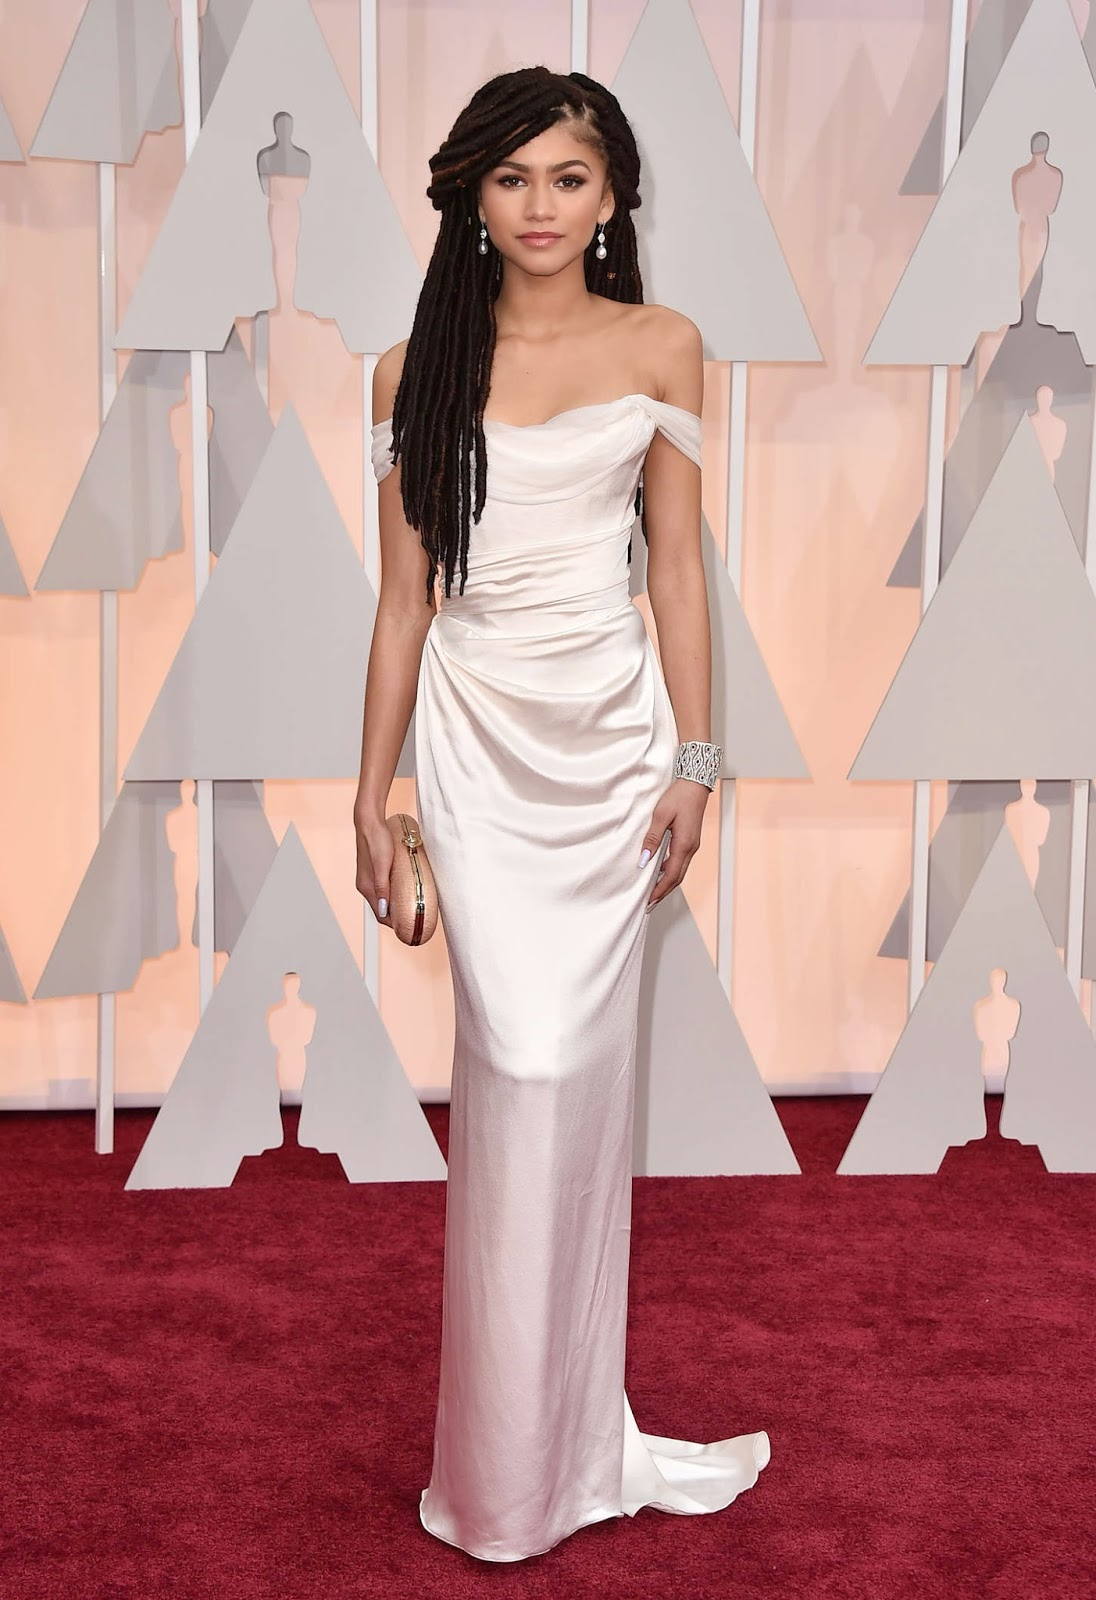 Zendaya Coleman wears dreadlocks and Vivienne Westwood to the 2015 Oscars in Hollywood